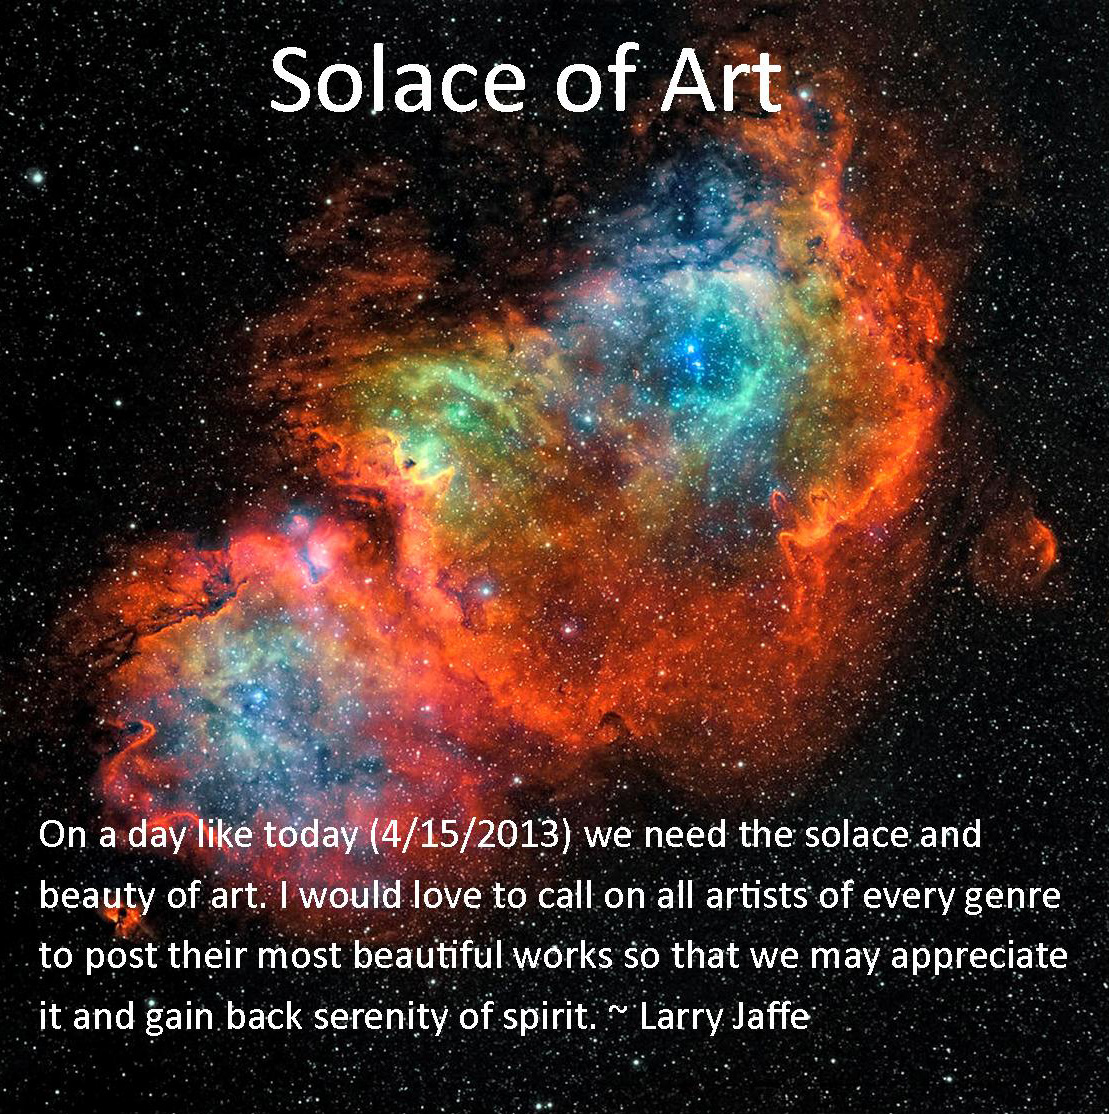 Solace of Art